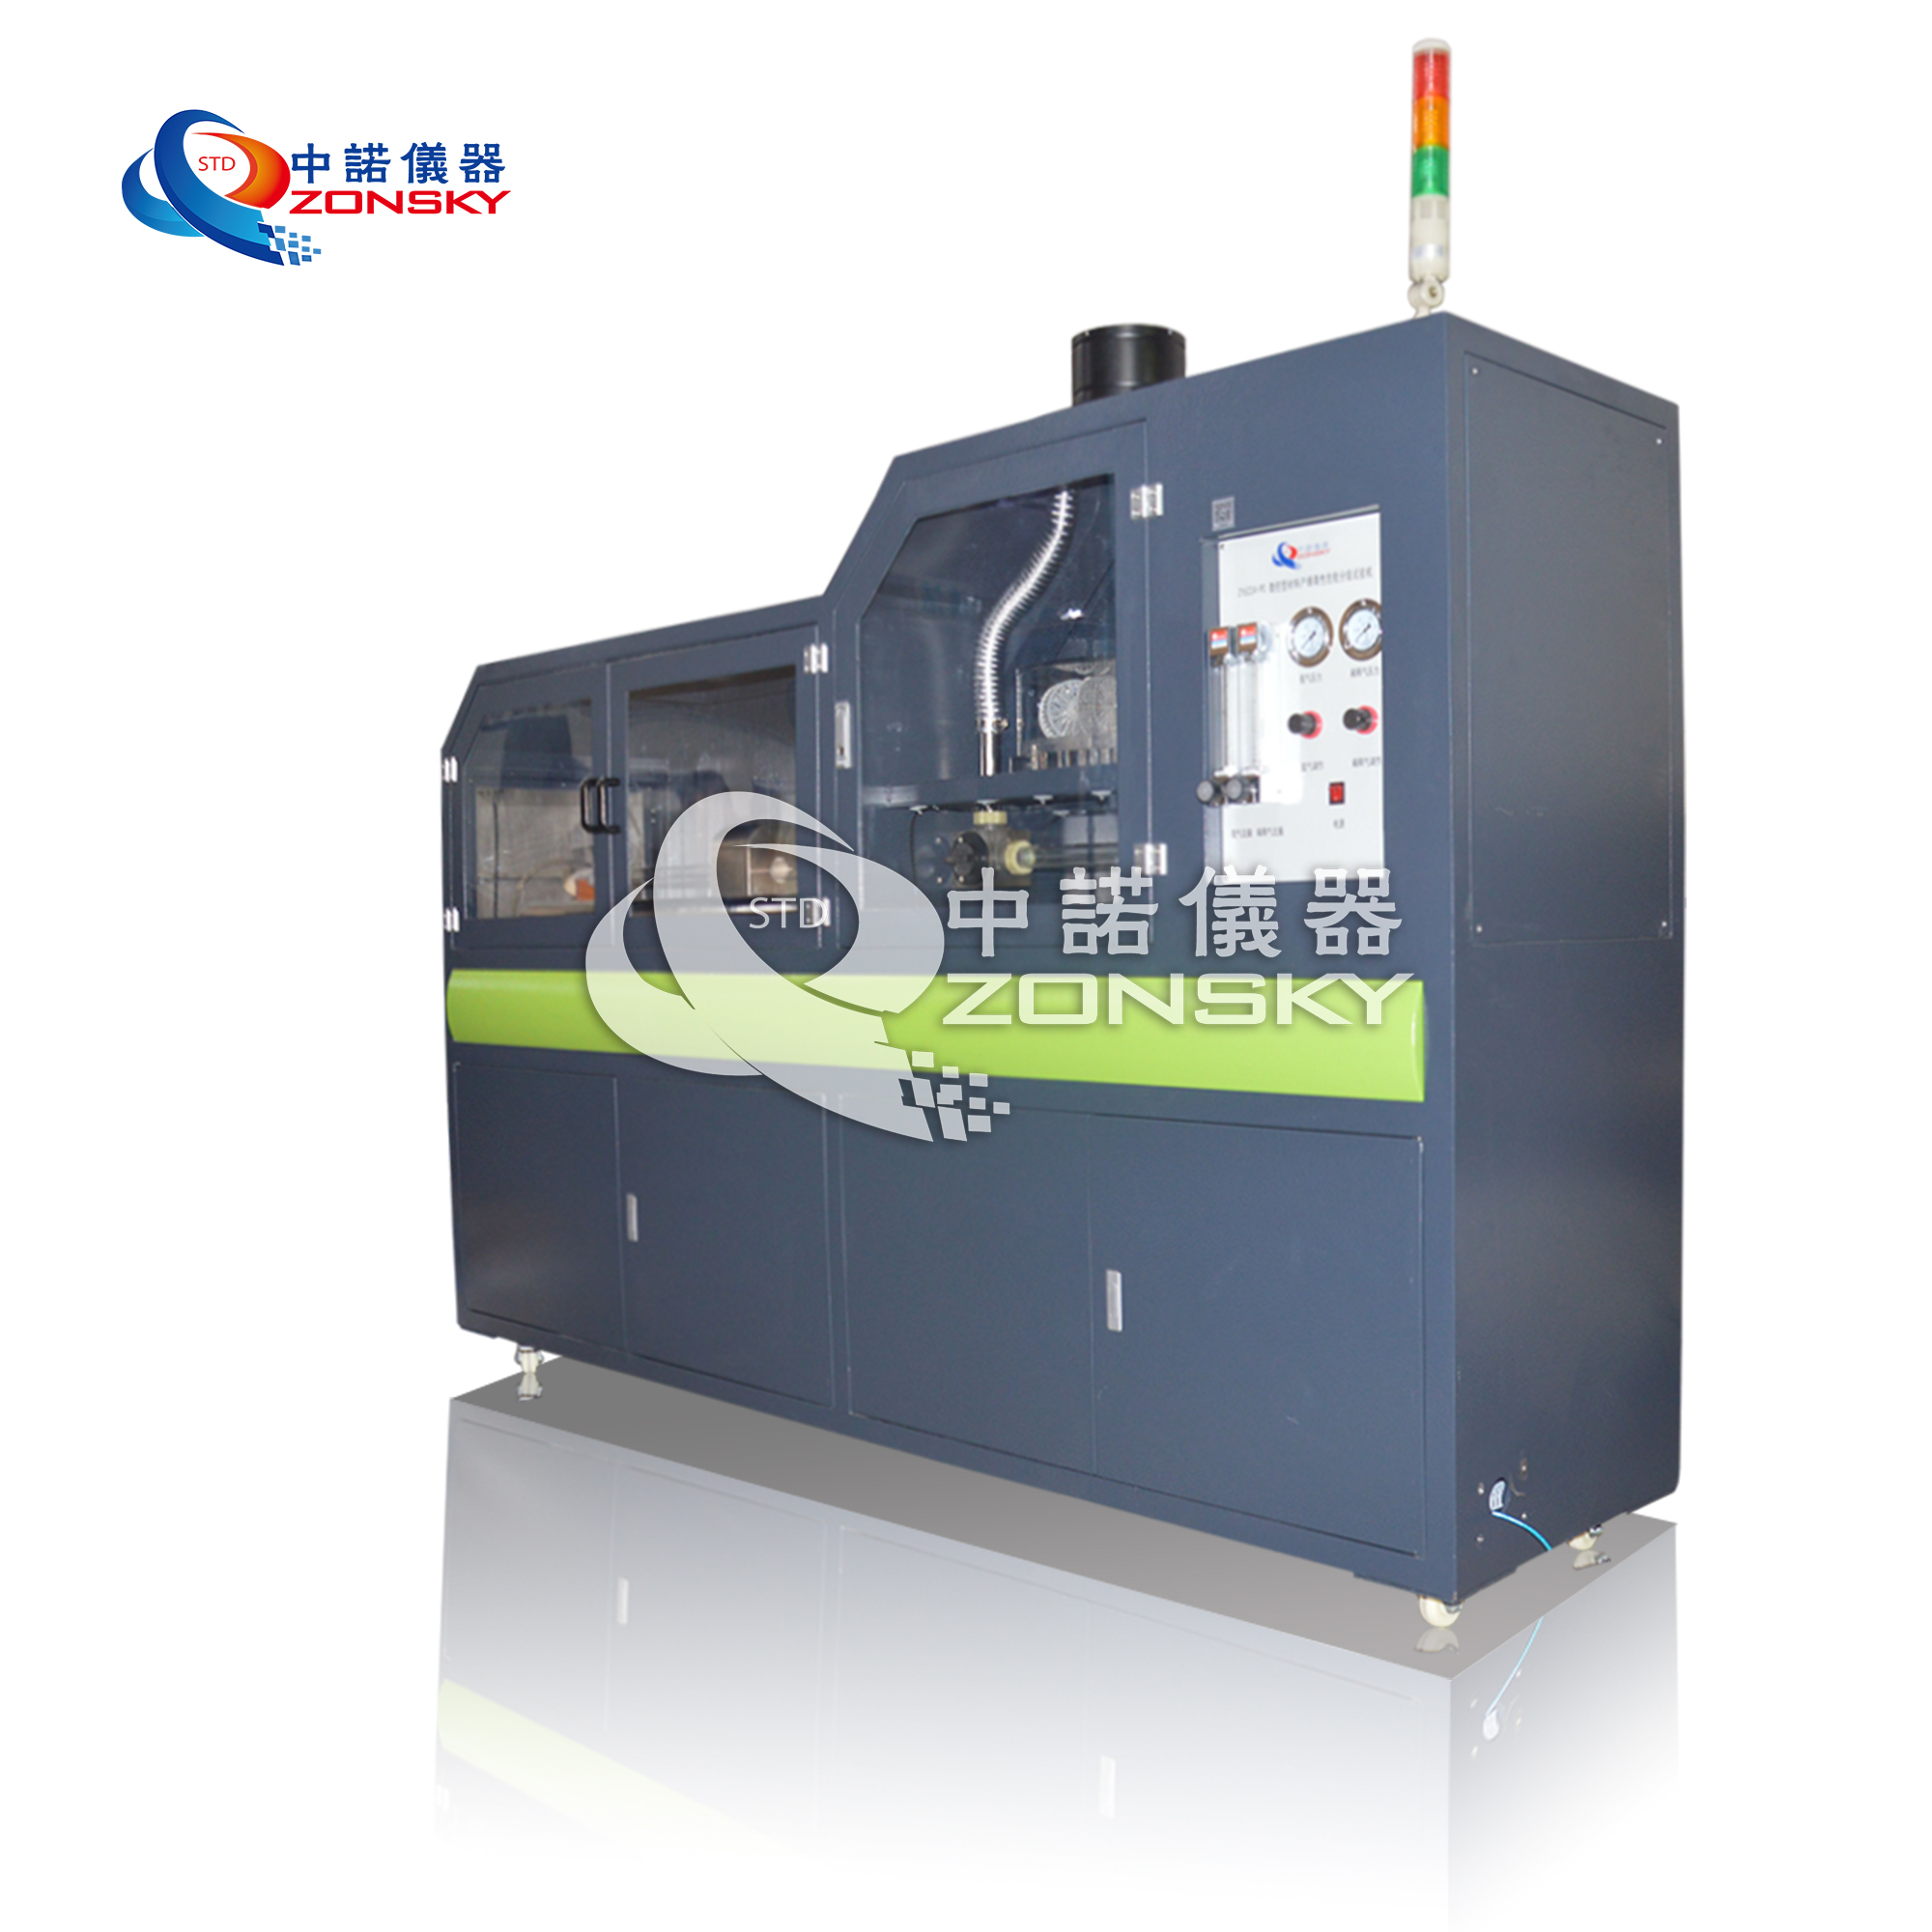 ISO 19700 Material Smoke Toxicity Hazard Classification Test Machine / Smoke Toxicity Test